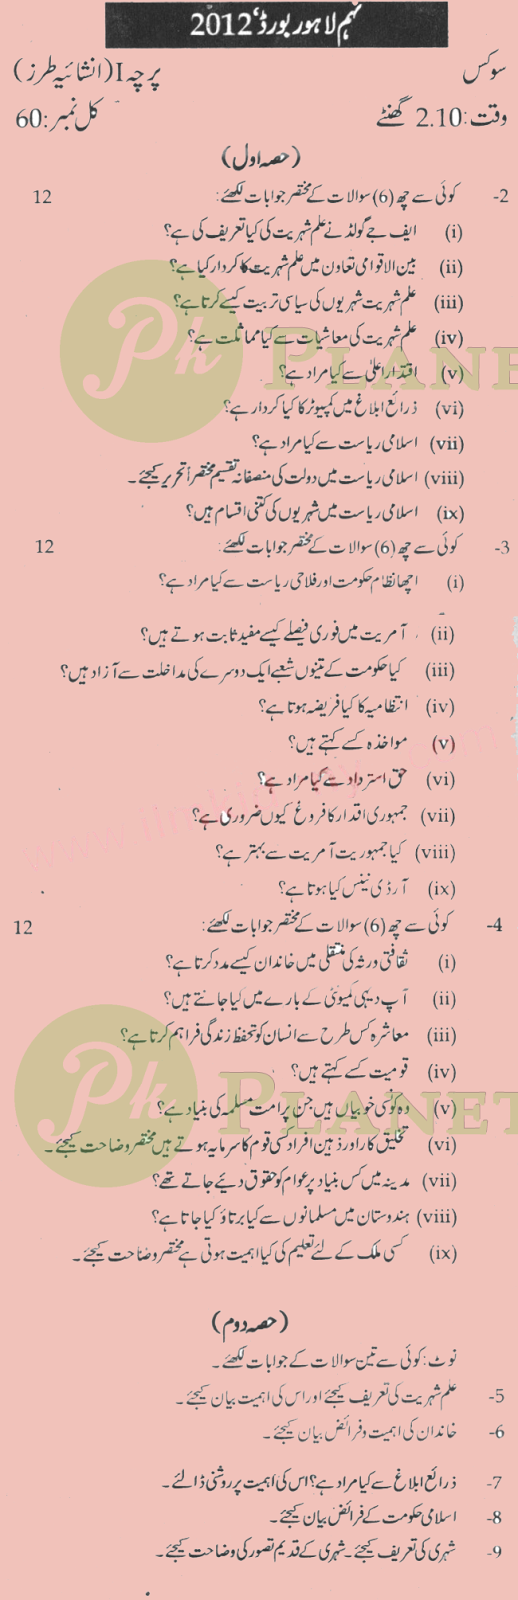 Past Papers of 9th Class Lahore Board Civics 2012